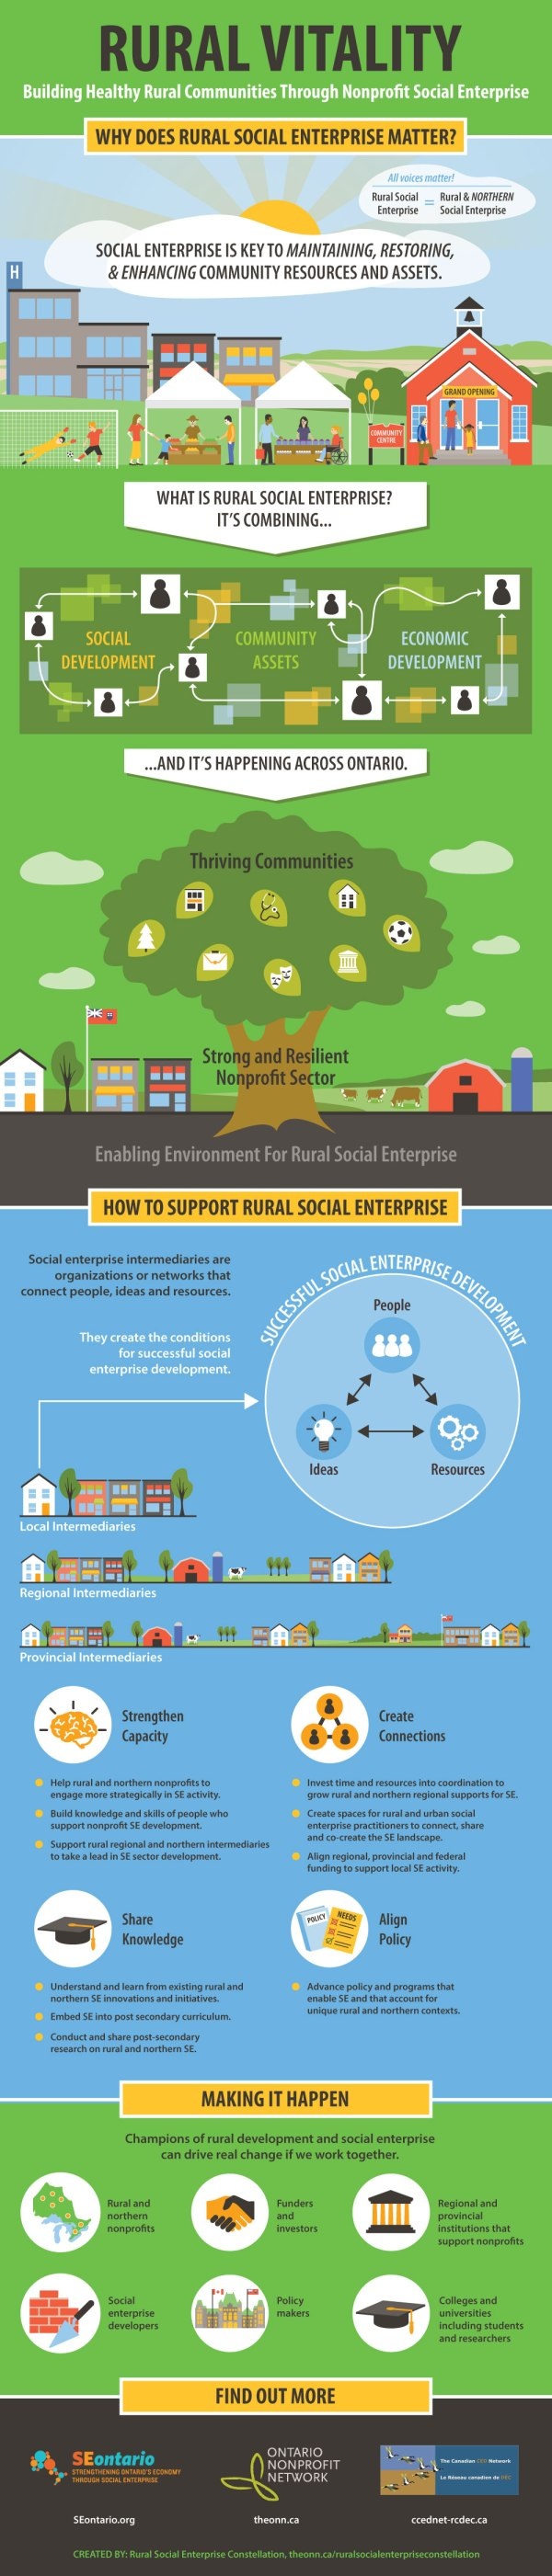 ONN Rural Social Enterprise infographic by KAP Design